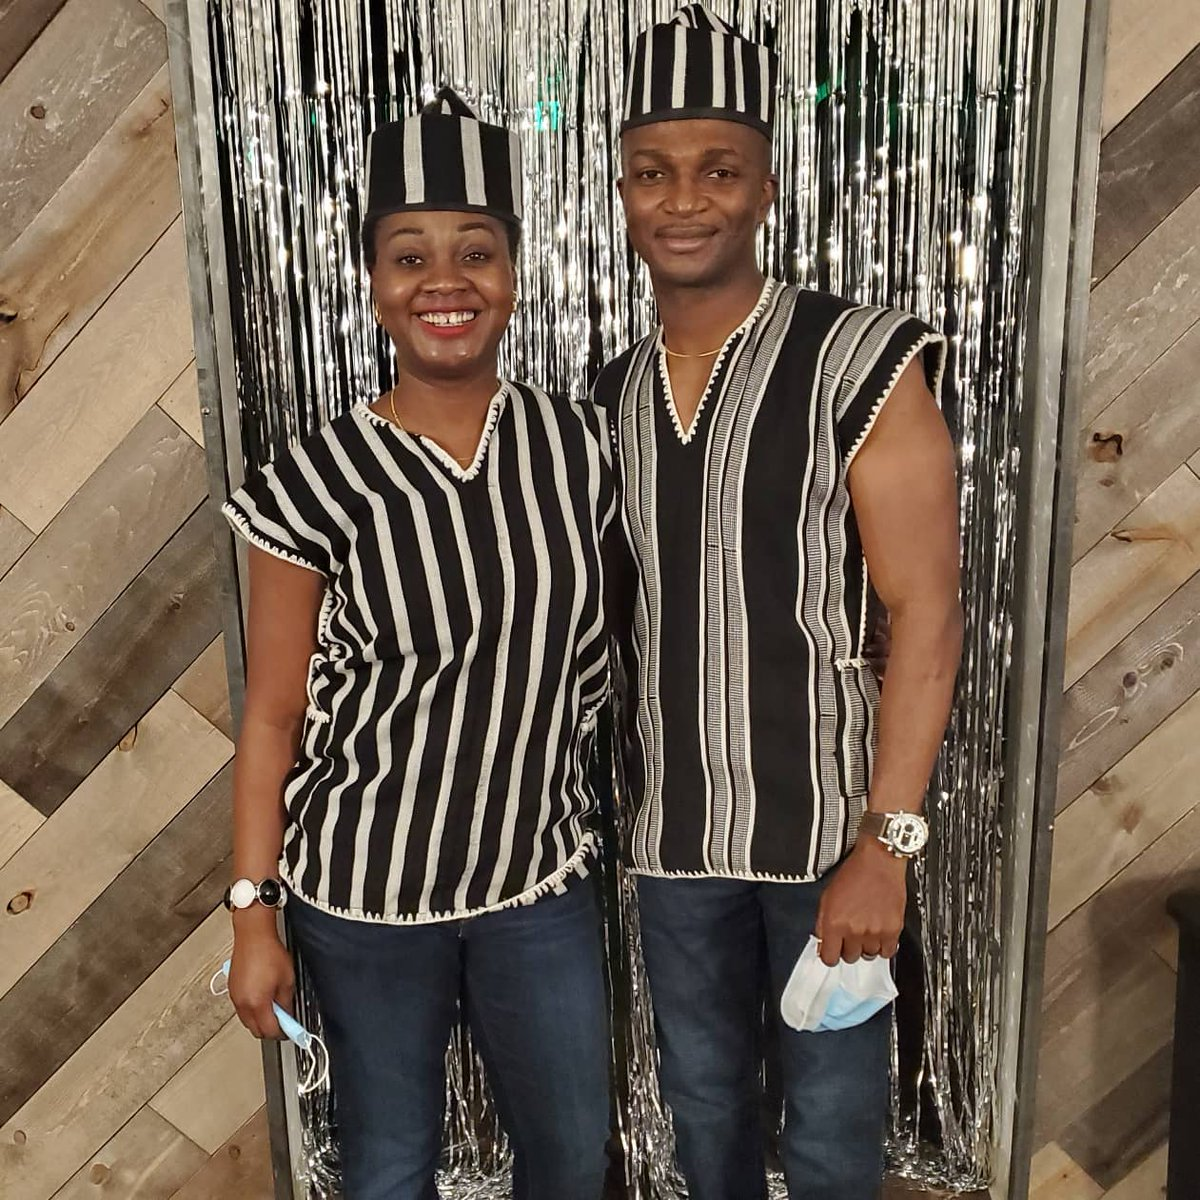 """😍 Wow! Congratulations and shout out to this beautiful US based #Yoruba couple @AdeolaFayehun and hubby @victorfayehun on their 10th wedding anniversary. You both look super great on """"a-nger u Tiv"""" You guys rock! 🦓😍🇳🇬 One Nigeria 🙌  #10thanniversary #couplegoals #sweet #Tiv"""